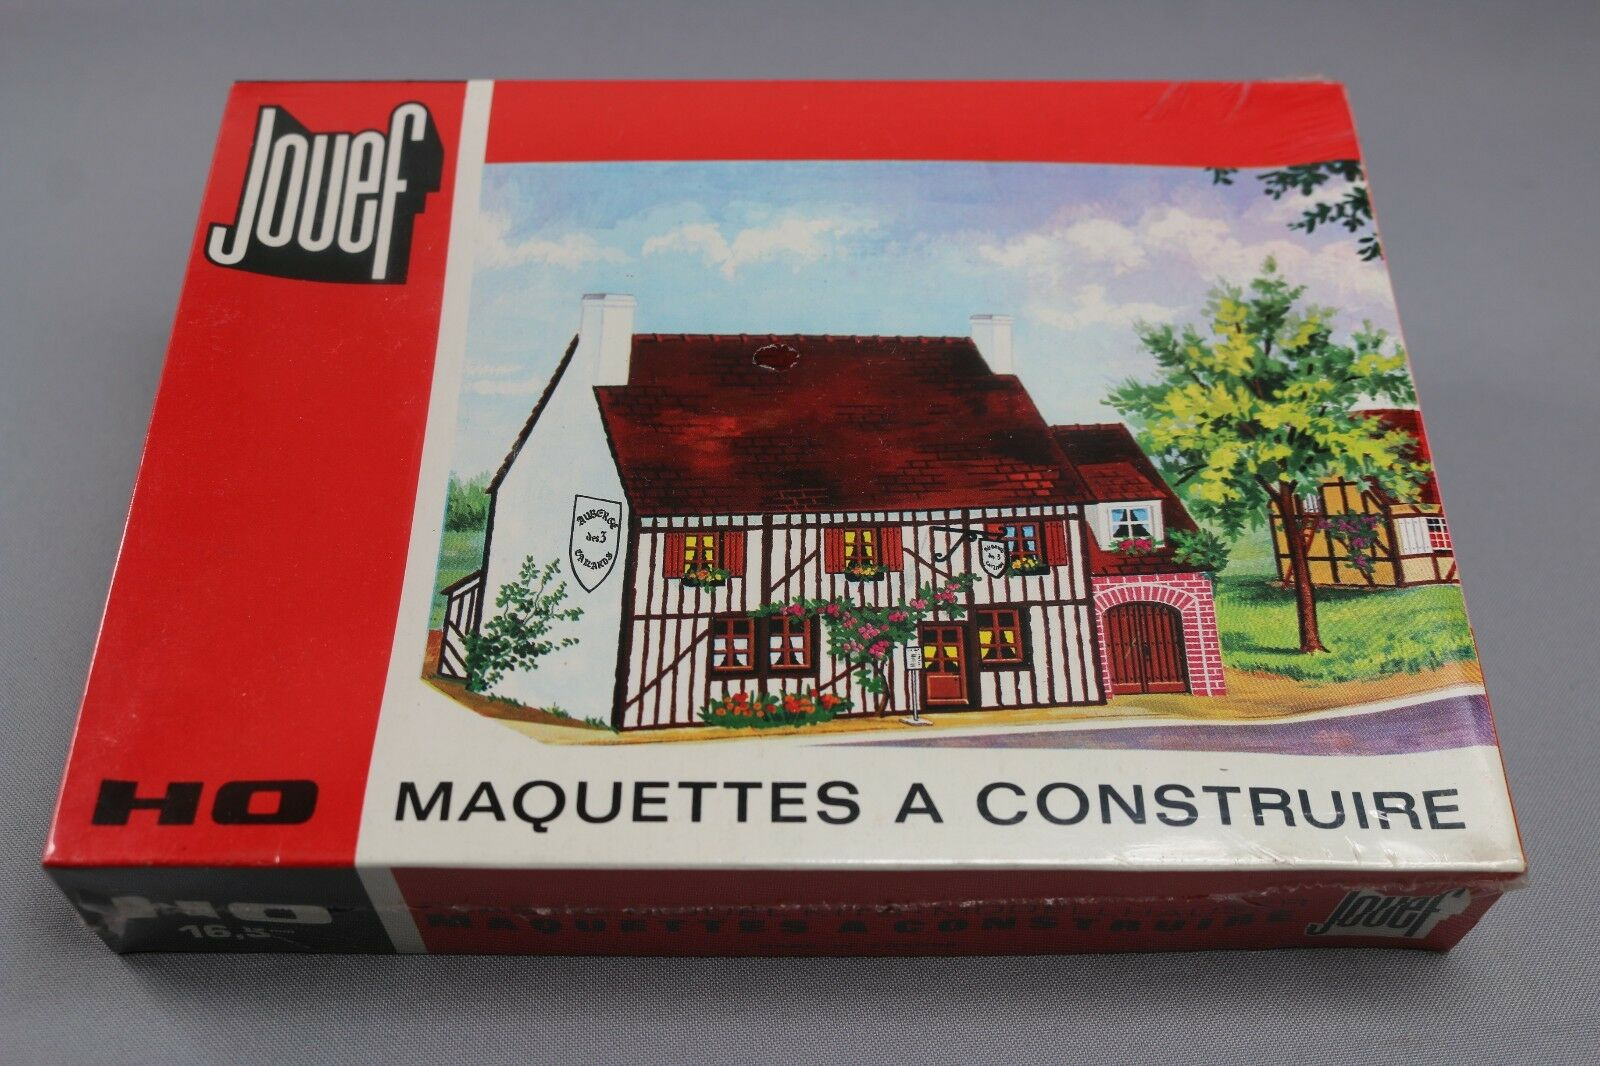 Z195 Jouef 1975 maquette train Ho 1:87 auberge normande decor diorama maison kit